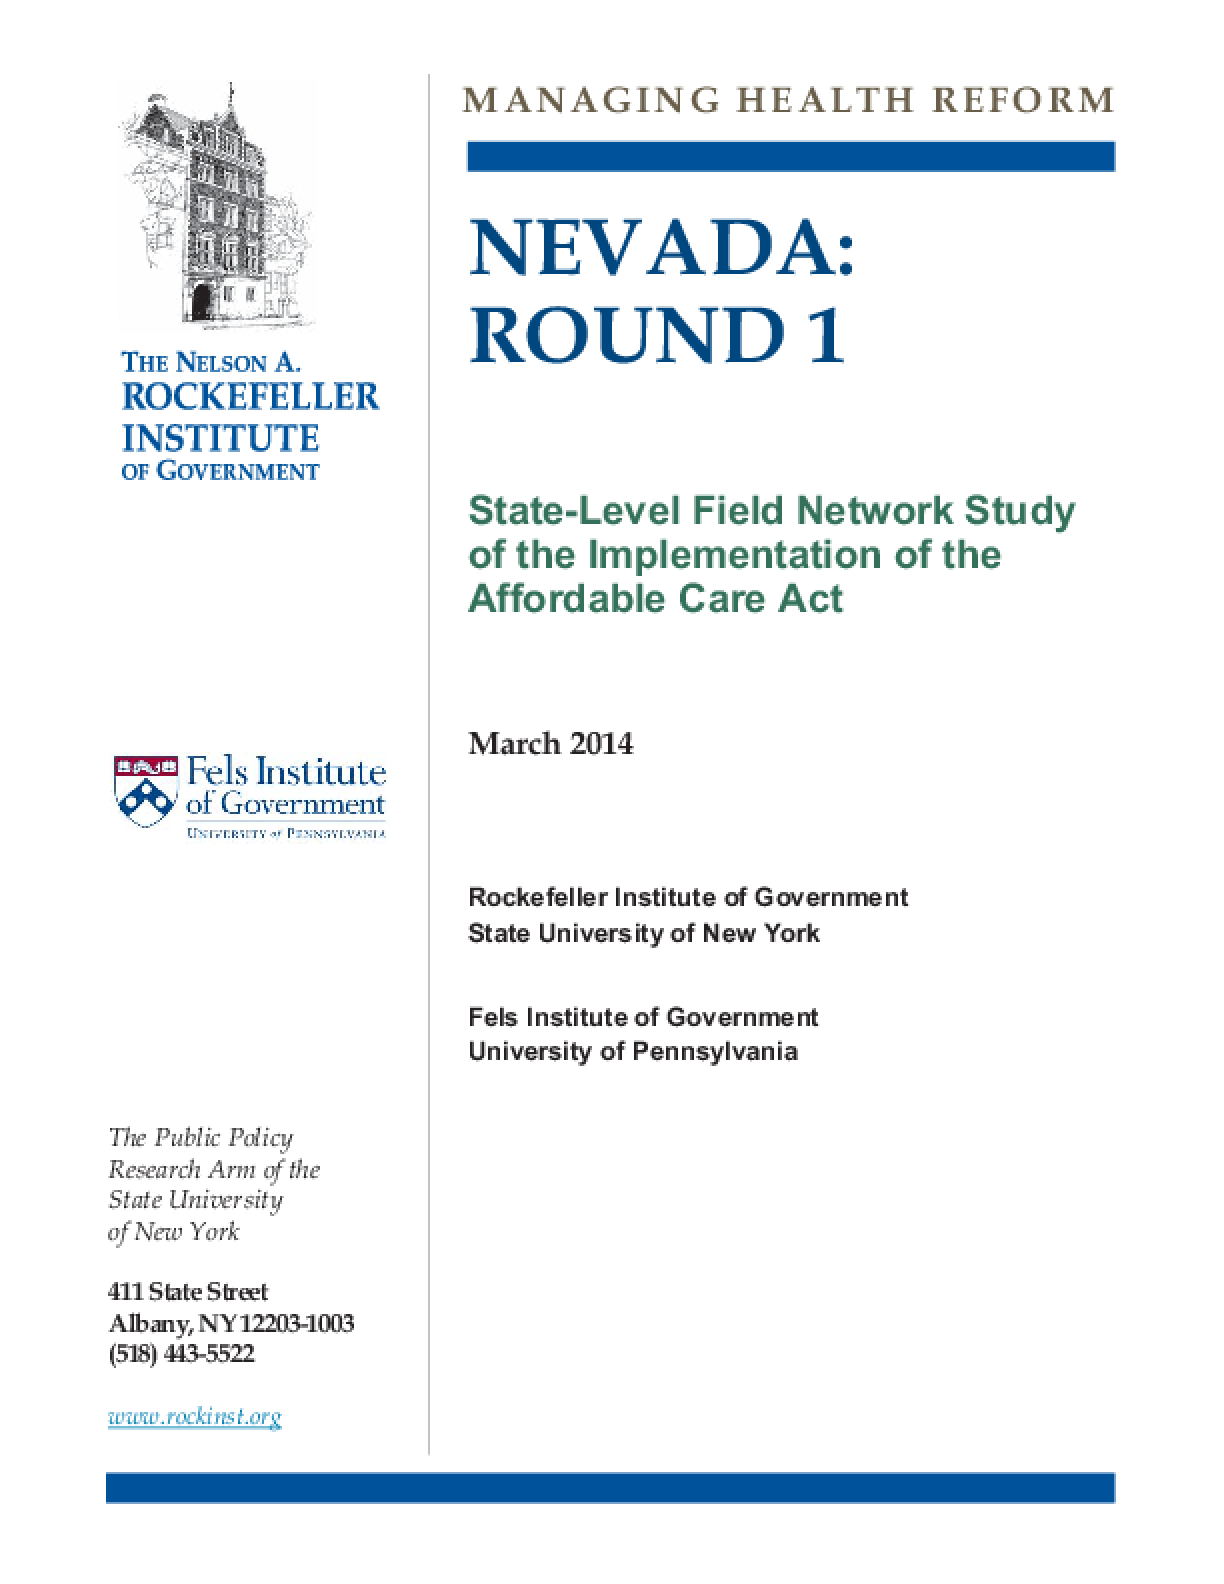 Nevada: Round 1 - State-Level Field Network Study of the Implementation of the Affordable Care Act